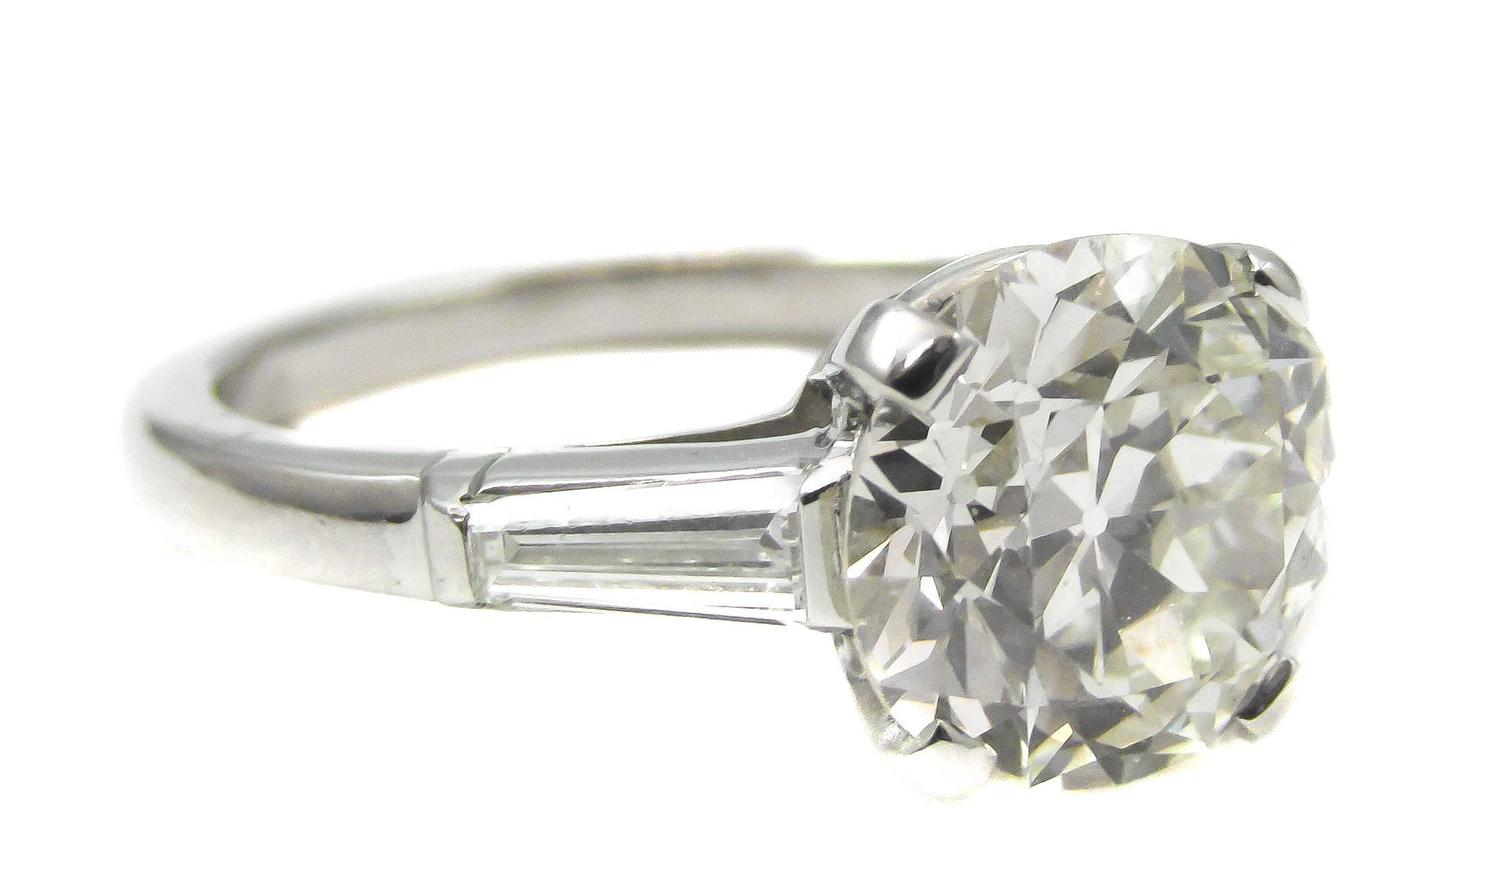 Tiffany and Co 2 88 Carat Diamond Platinum Ring For Sale at 1stdibs